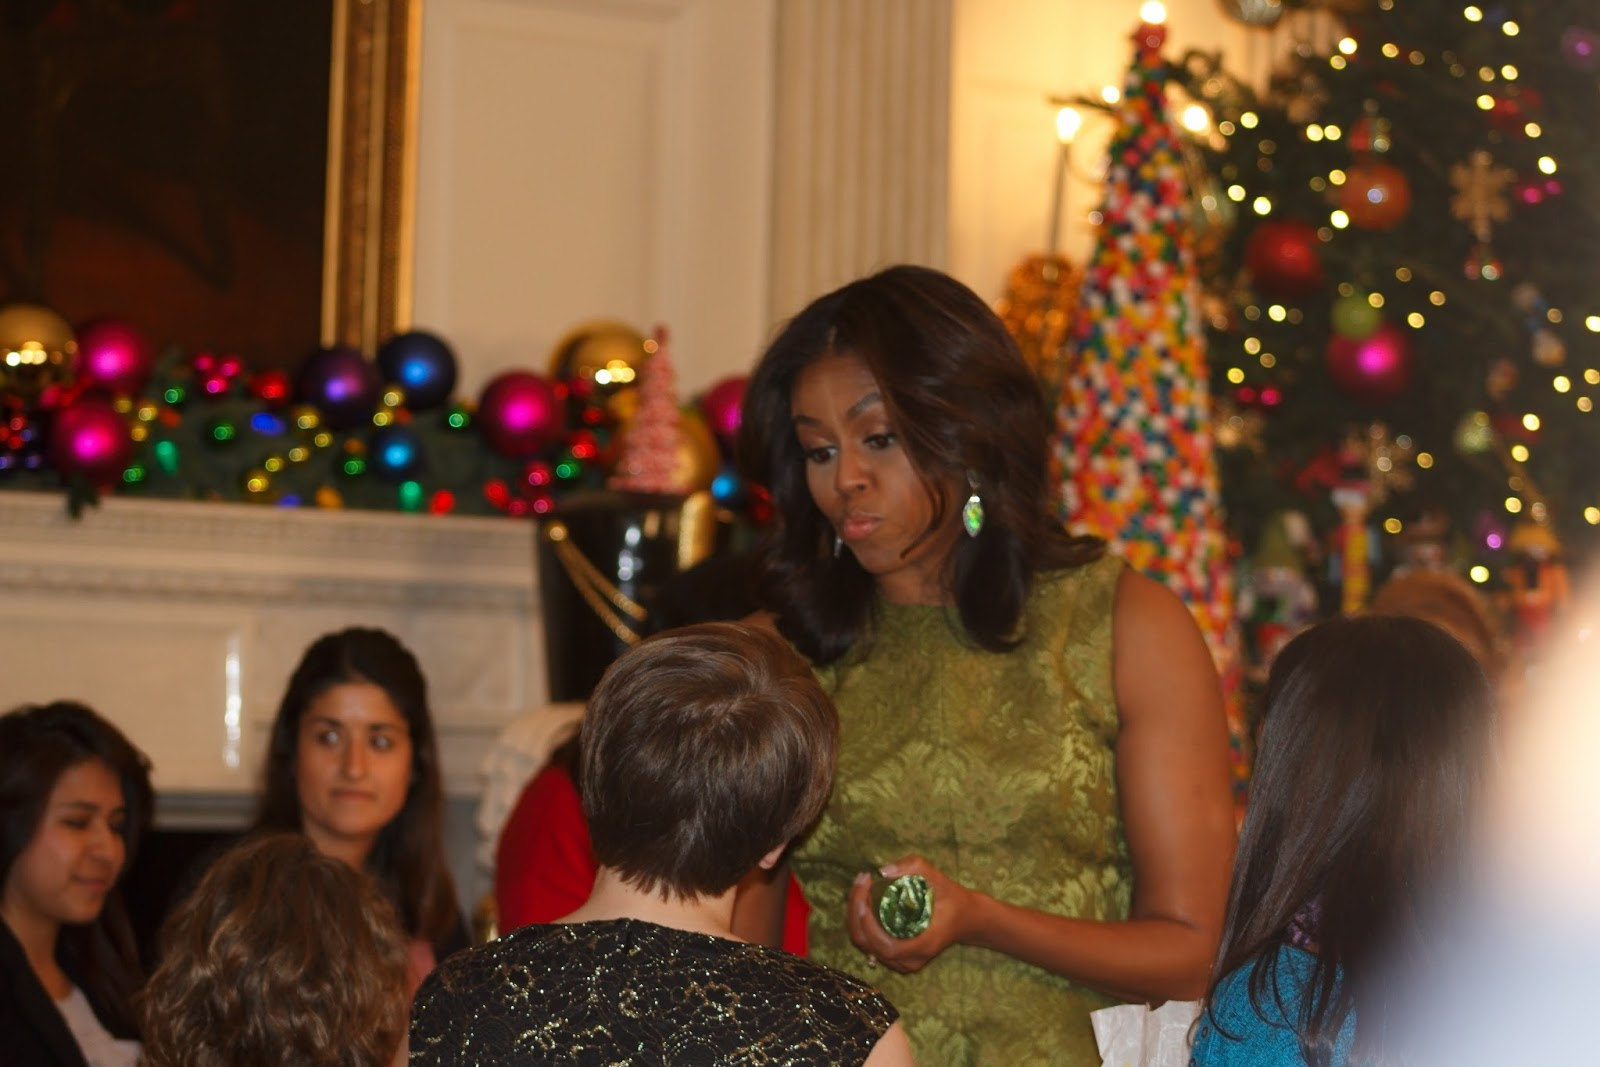 FIRST LOOK: White House previews its decked halls to kick off the ...